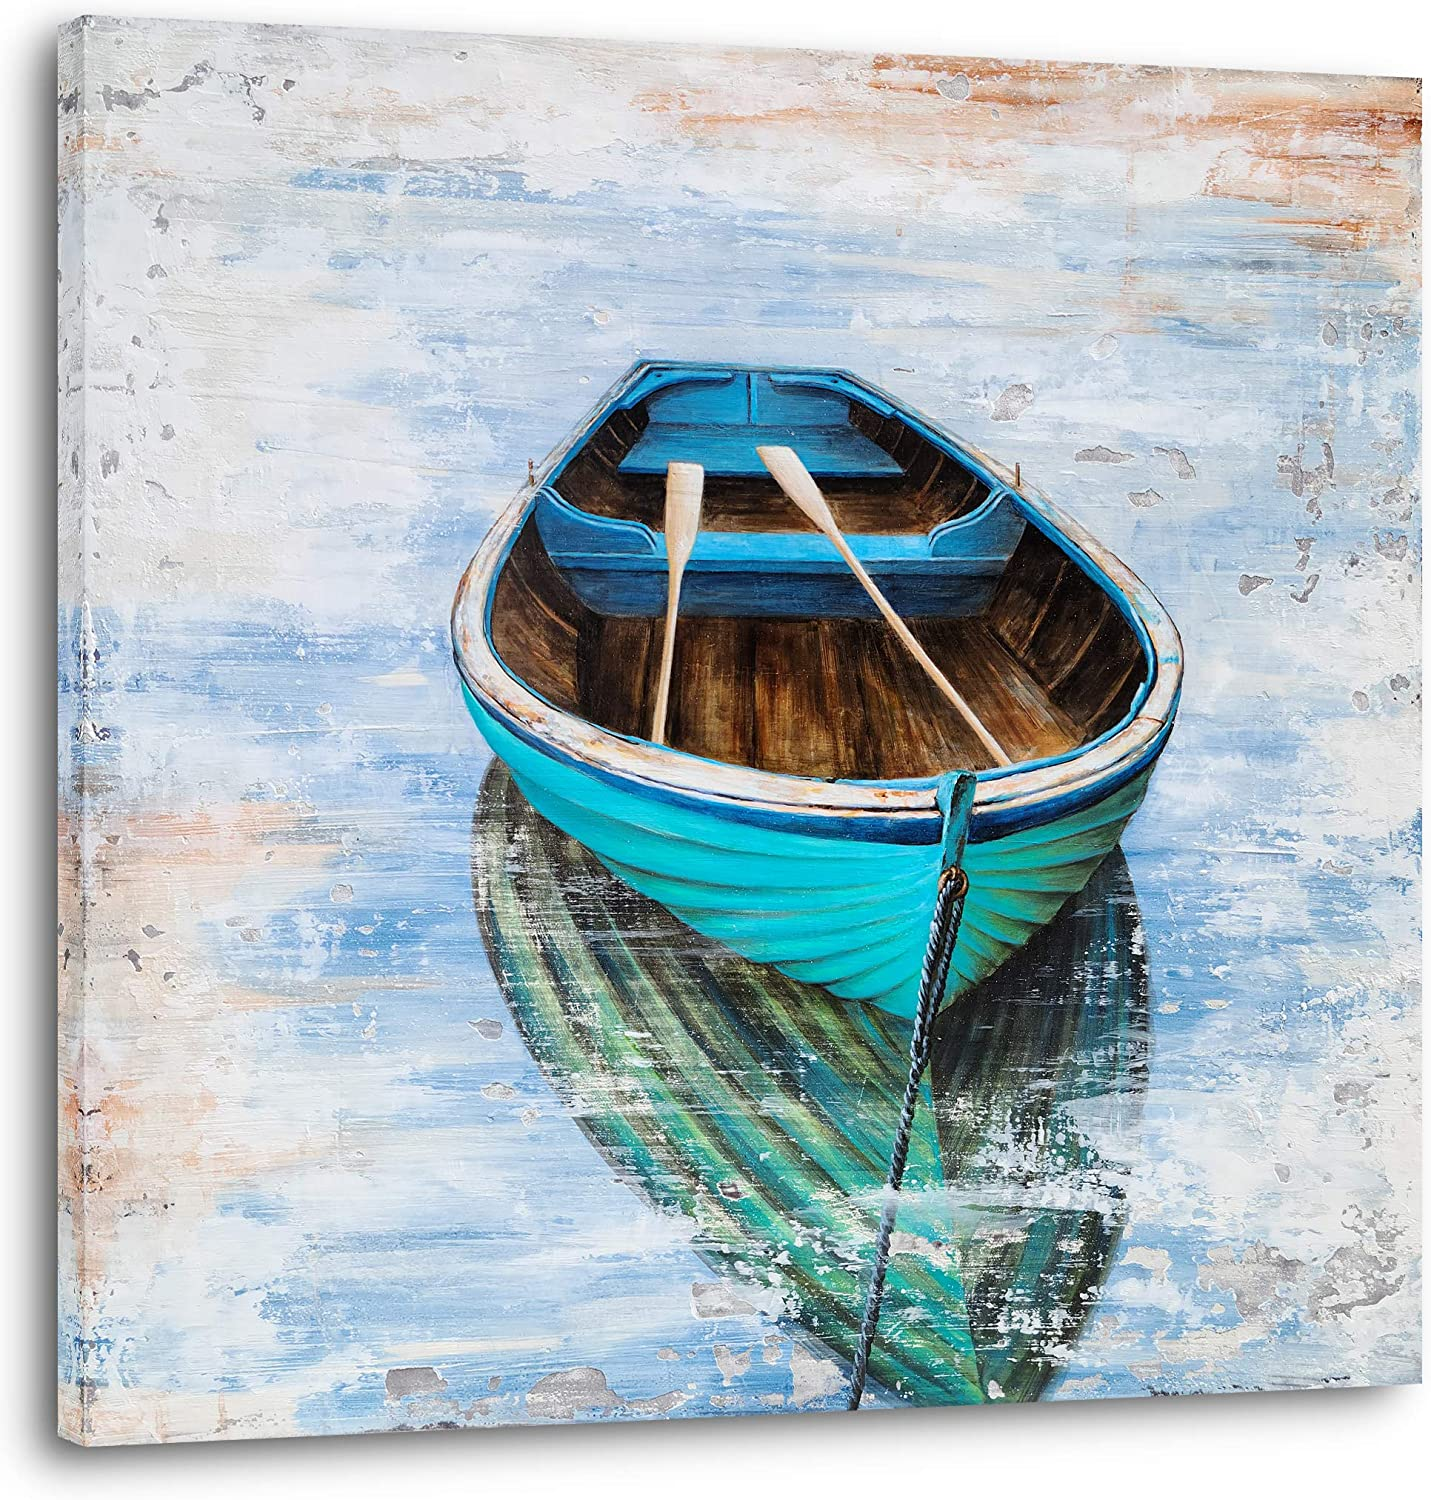 YHSKY ARTS Coastal Canvas Wall Art Hand Painted Turquoise Sailing Boat Painting Pictures Modern Abstract Nautical Artwork for Living Room Bedroom Bathroom Decoration